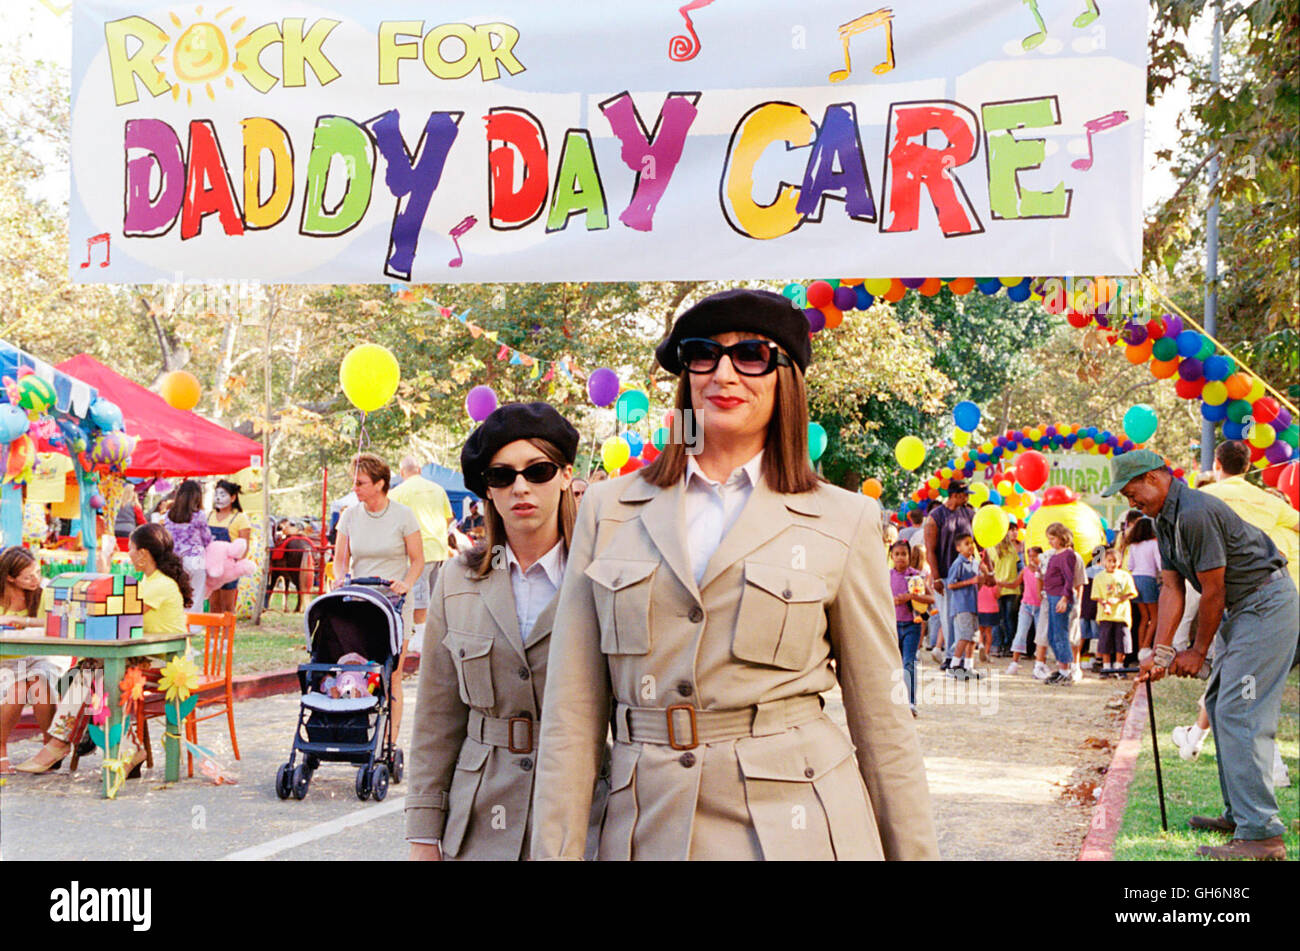 Daddy Day Care Movie Stock Photos Amp Daddy Day Care Movie